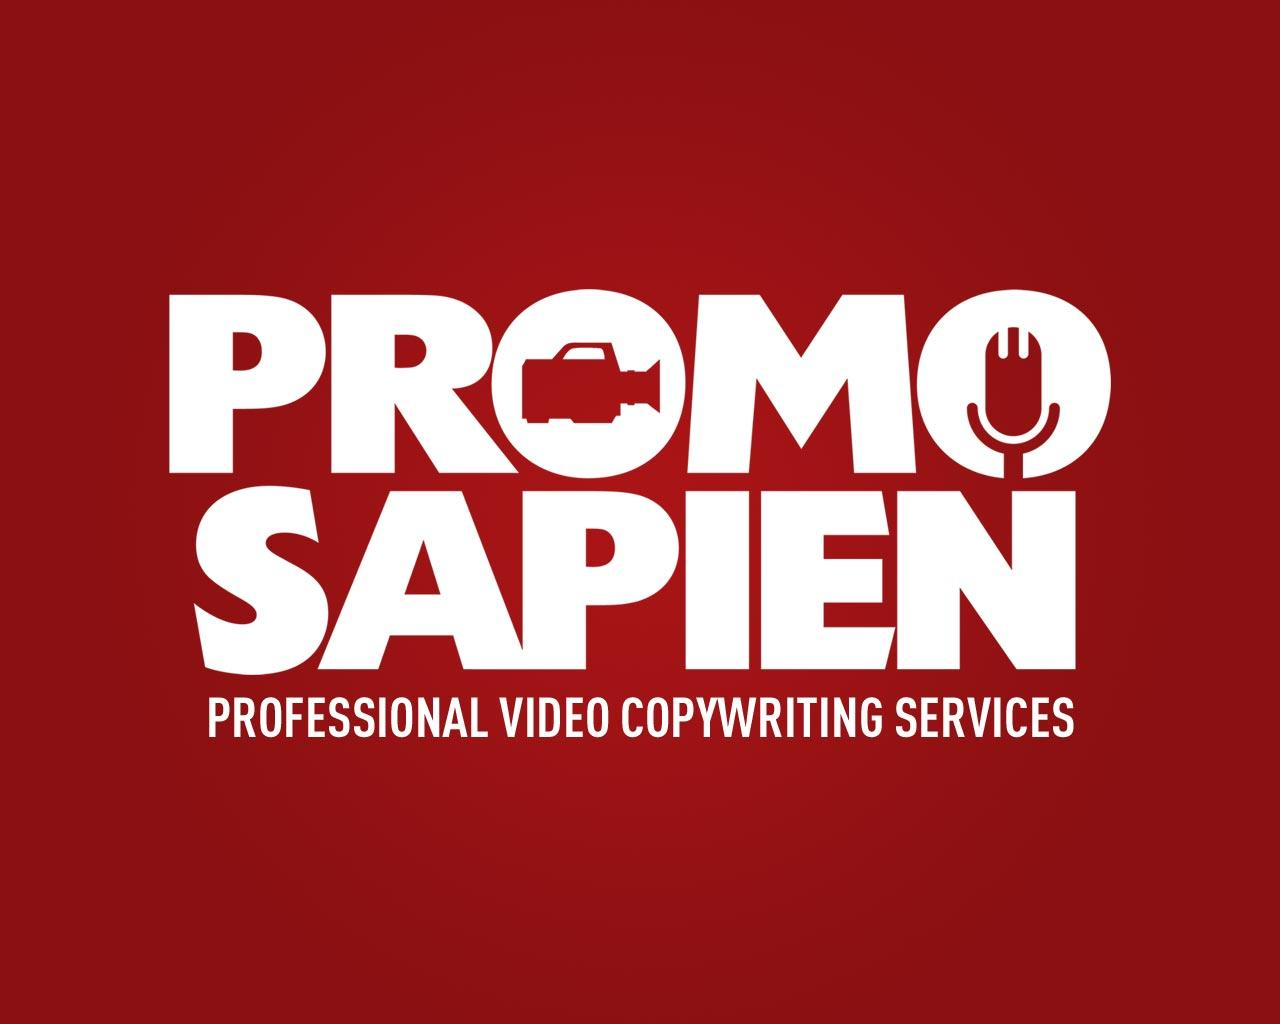 Promotional Video Copywriting by promosapien - 74531